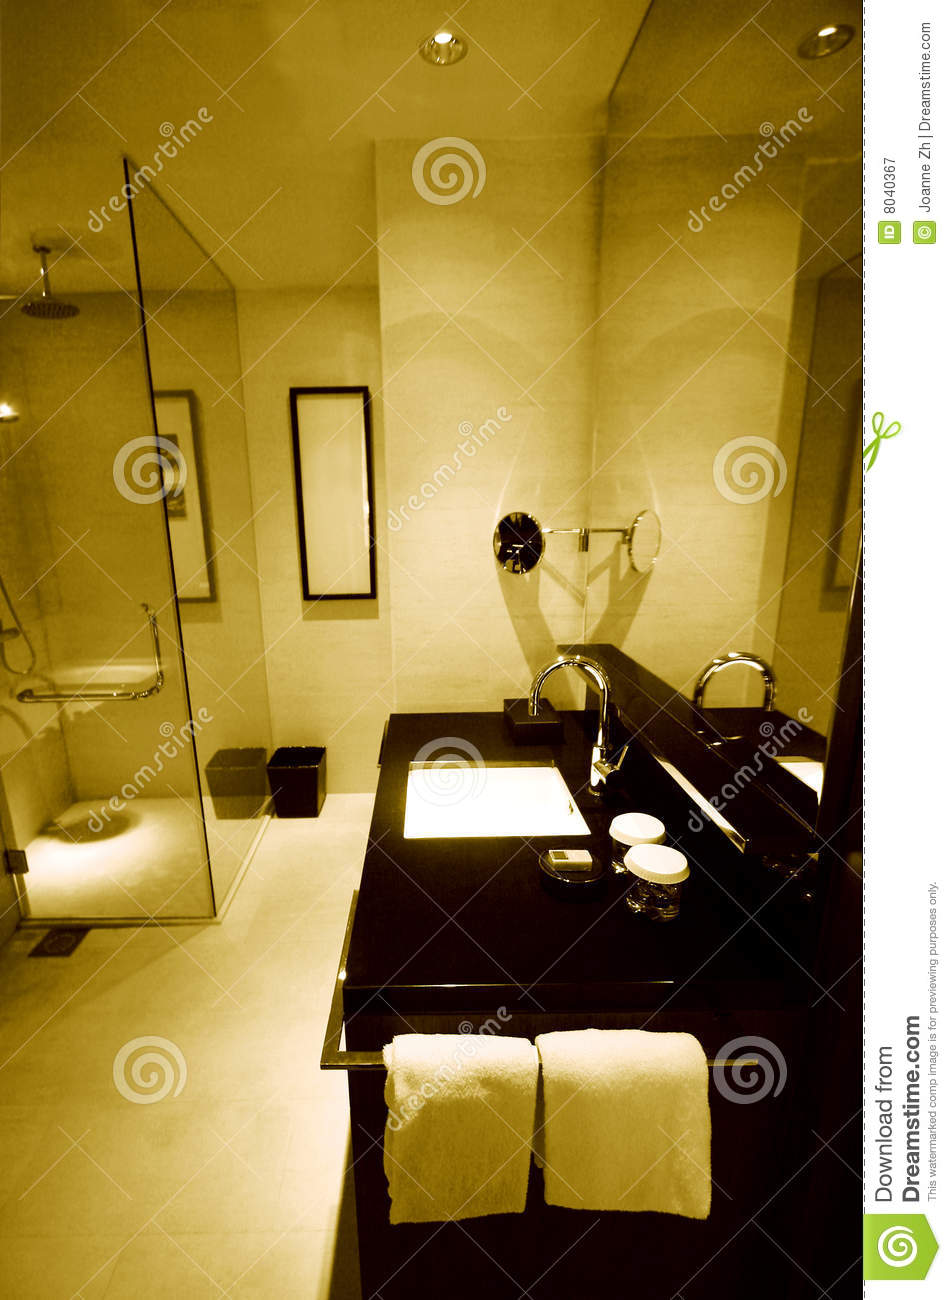 New Luxury Resort Hotel Bathrooms Stock Image  Image of